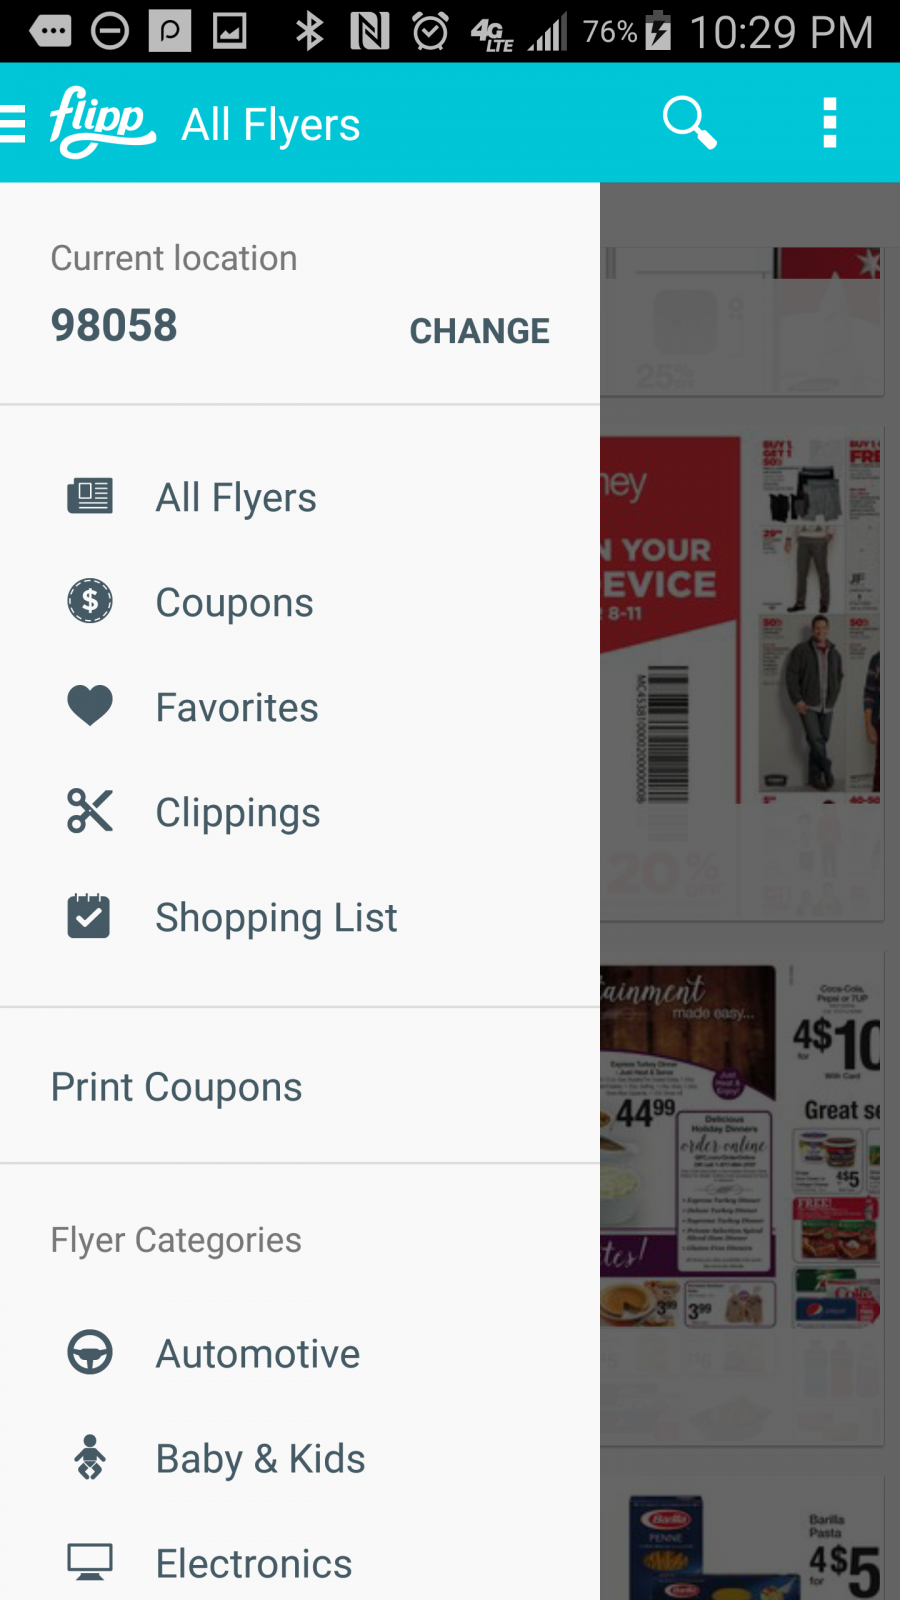 Flipp App - Homepage - Flipp App - circulars online with coupons and matchups for major retailers across the US. ad